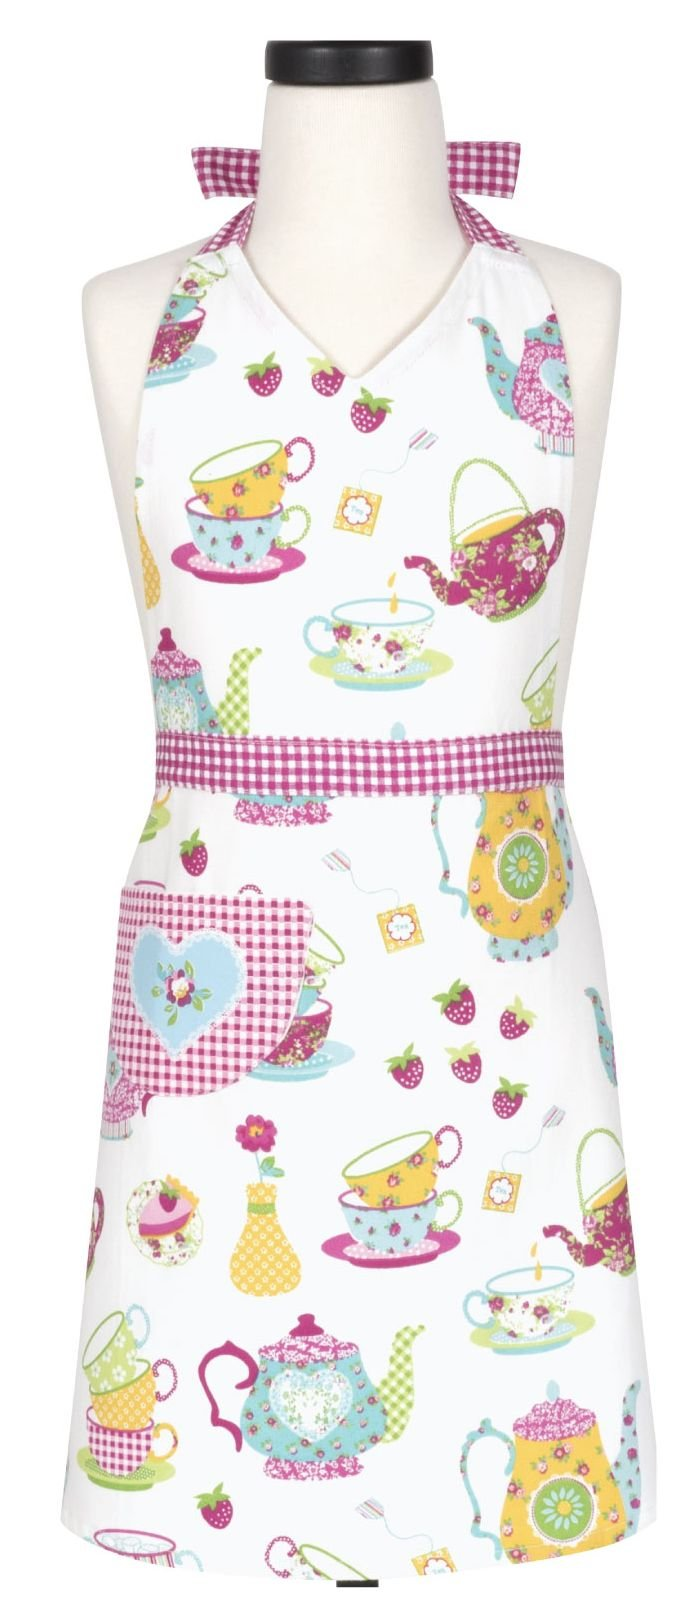 Handstand Kitchen Child's 100% Cotton 'Spring Tea Party' Apron with Patch Pocket